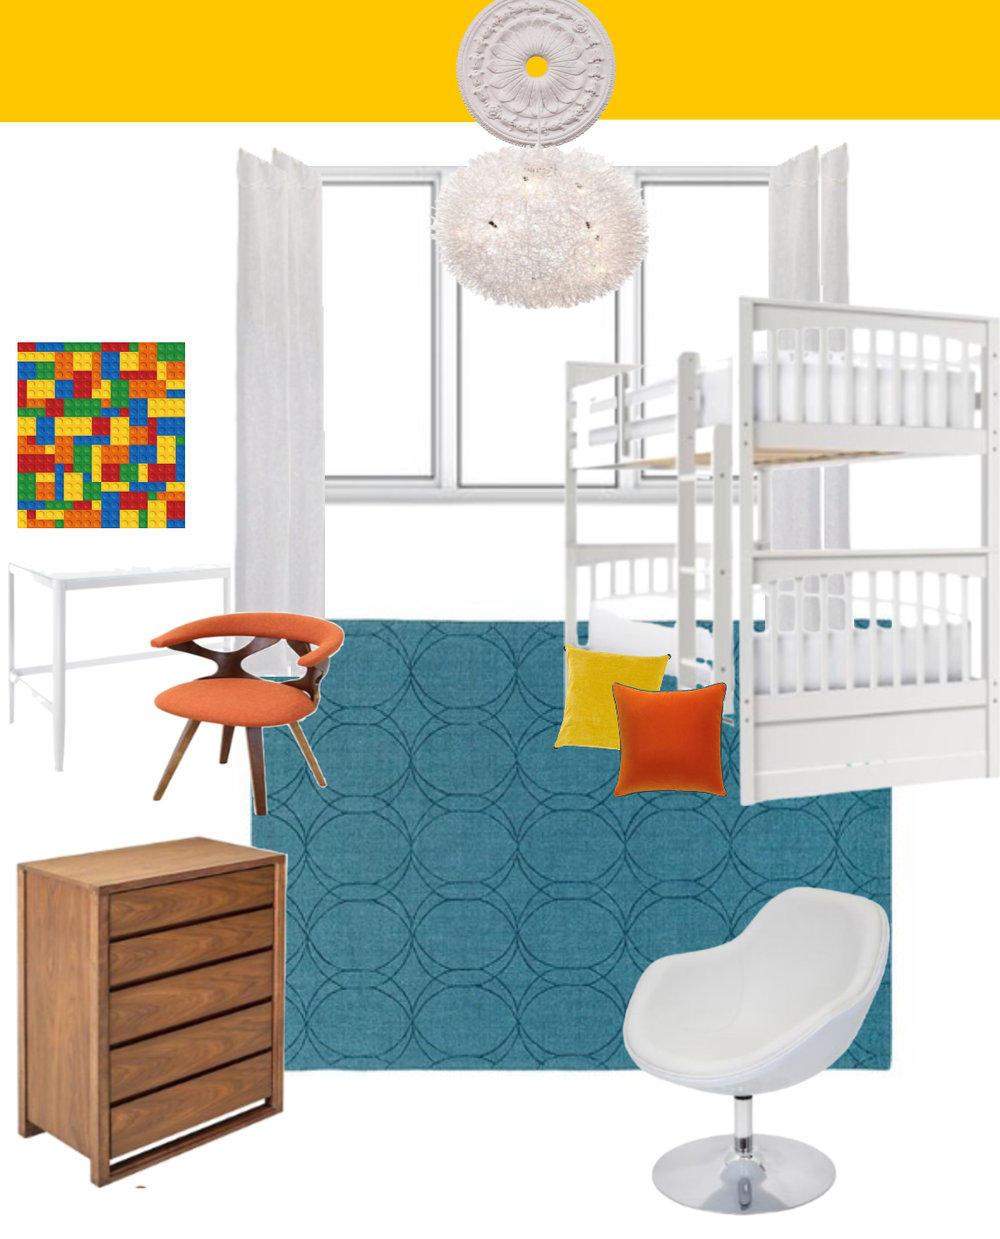 colorful modern kids bedroom design moodboard by the rath project